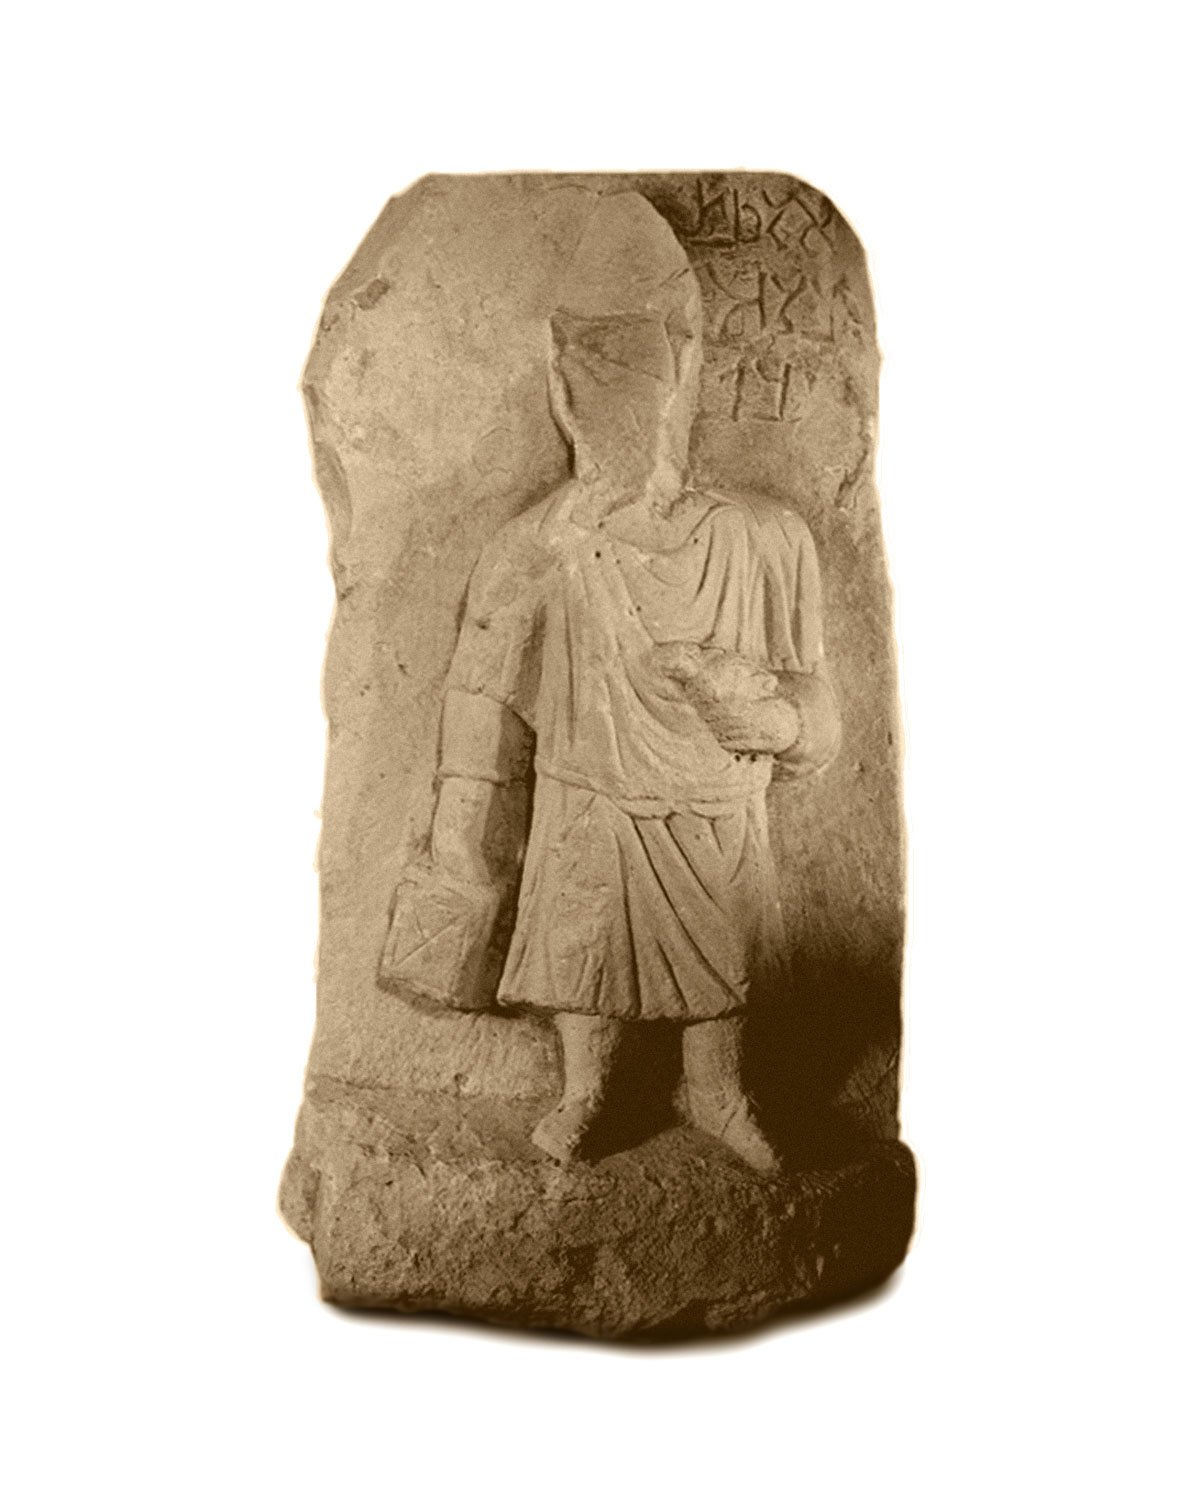 Stele with a standing boy holding tablets and a bird